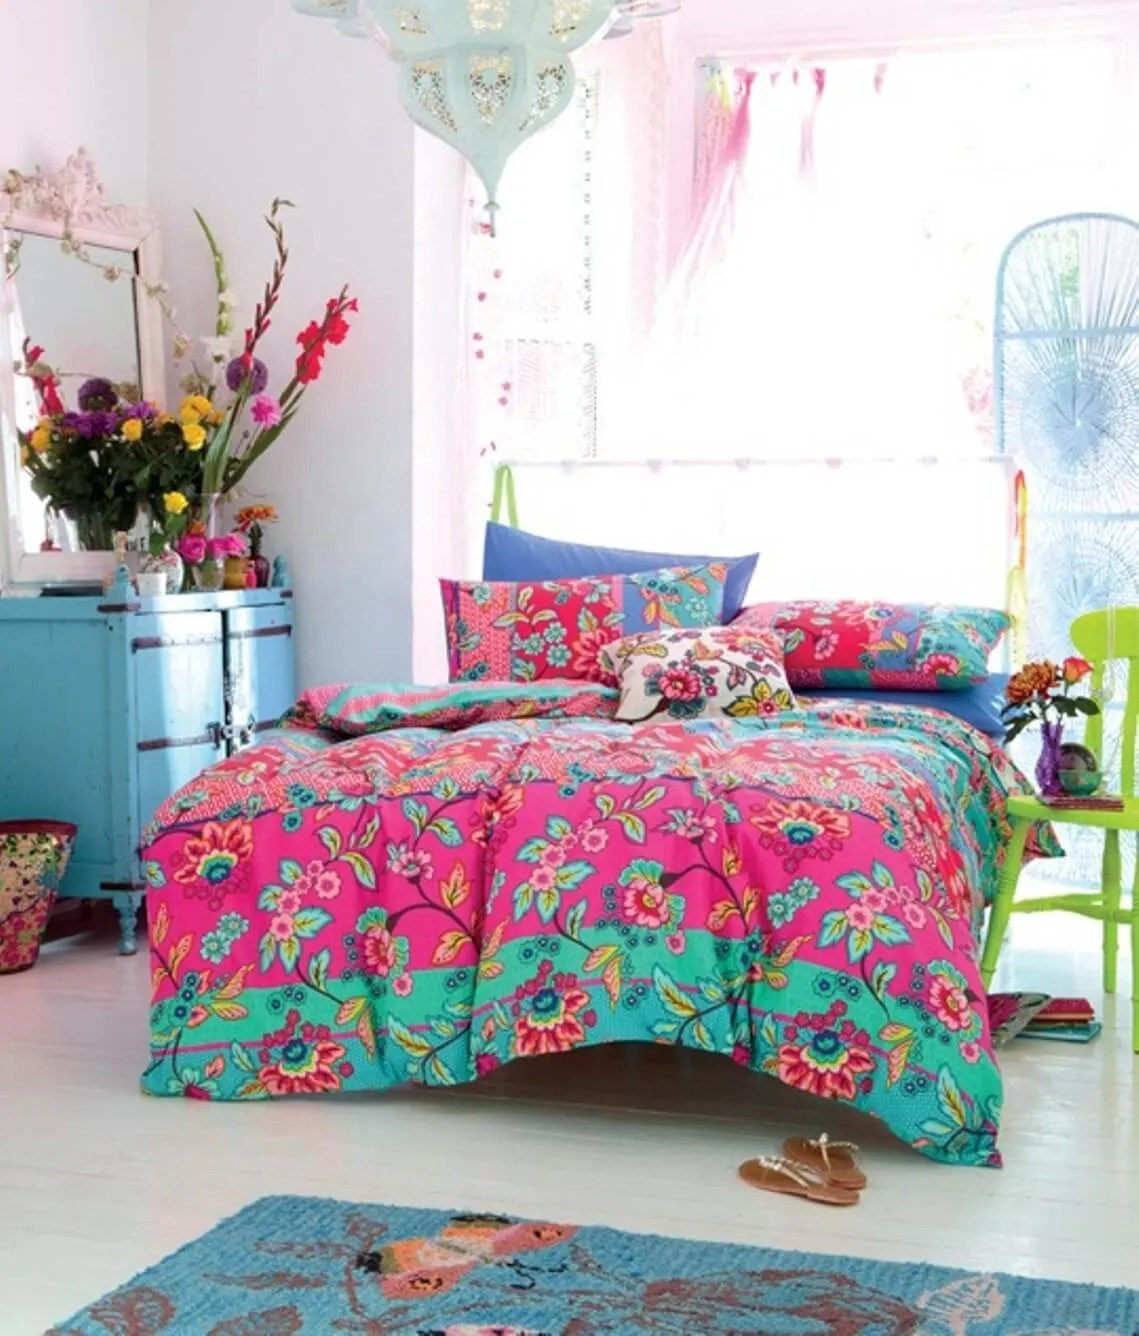 8 Bohemian Chic Teen Girls Bedroom Ideas  https